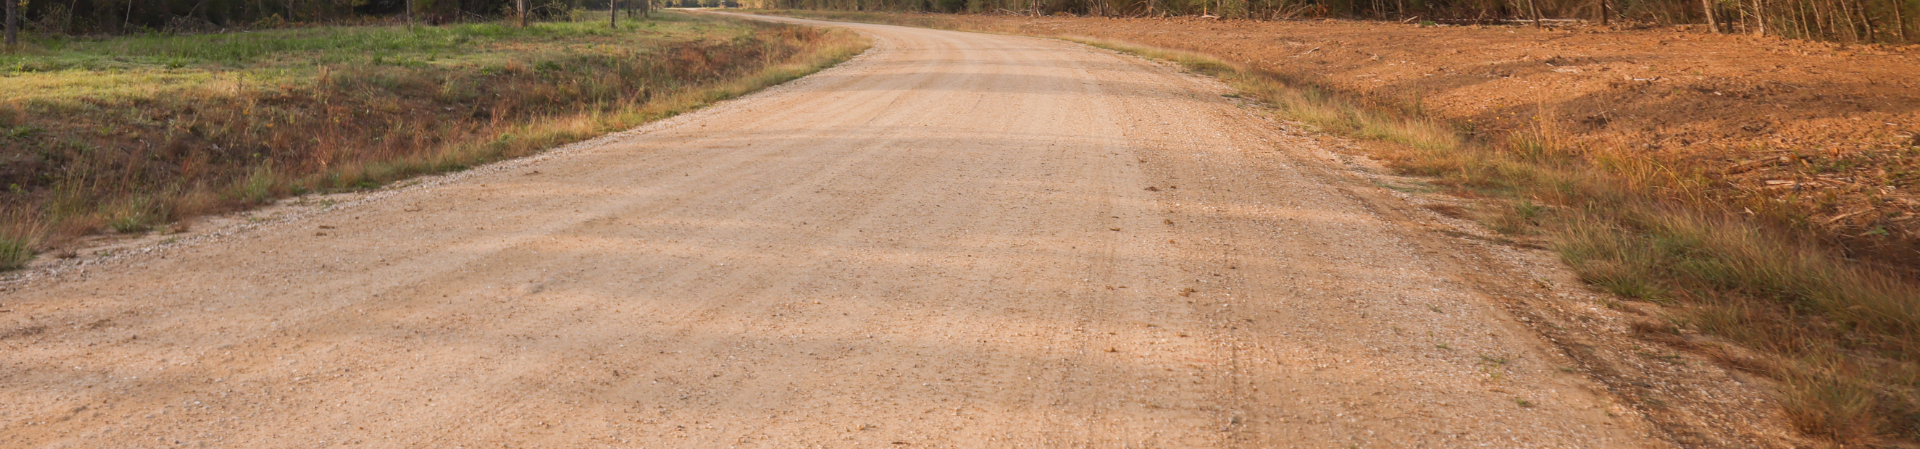 Perma-Zyme Unpaved Road Header